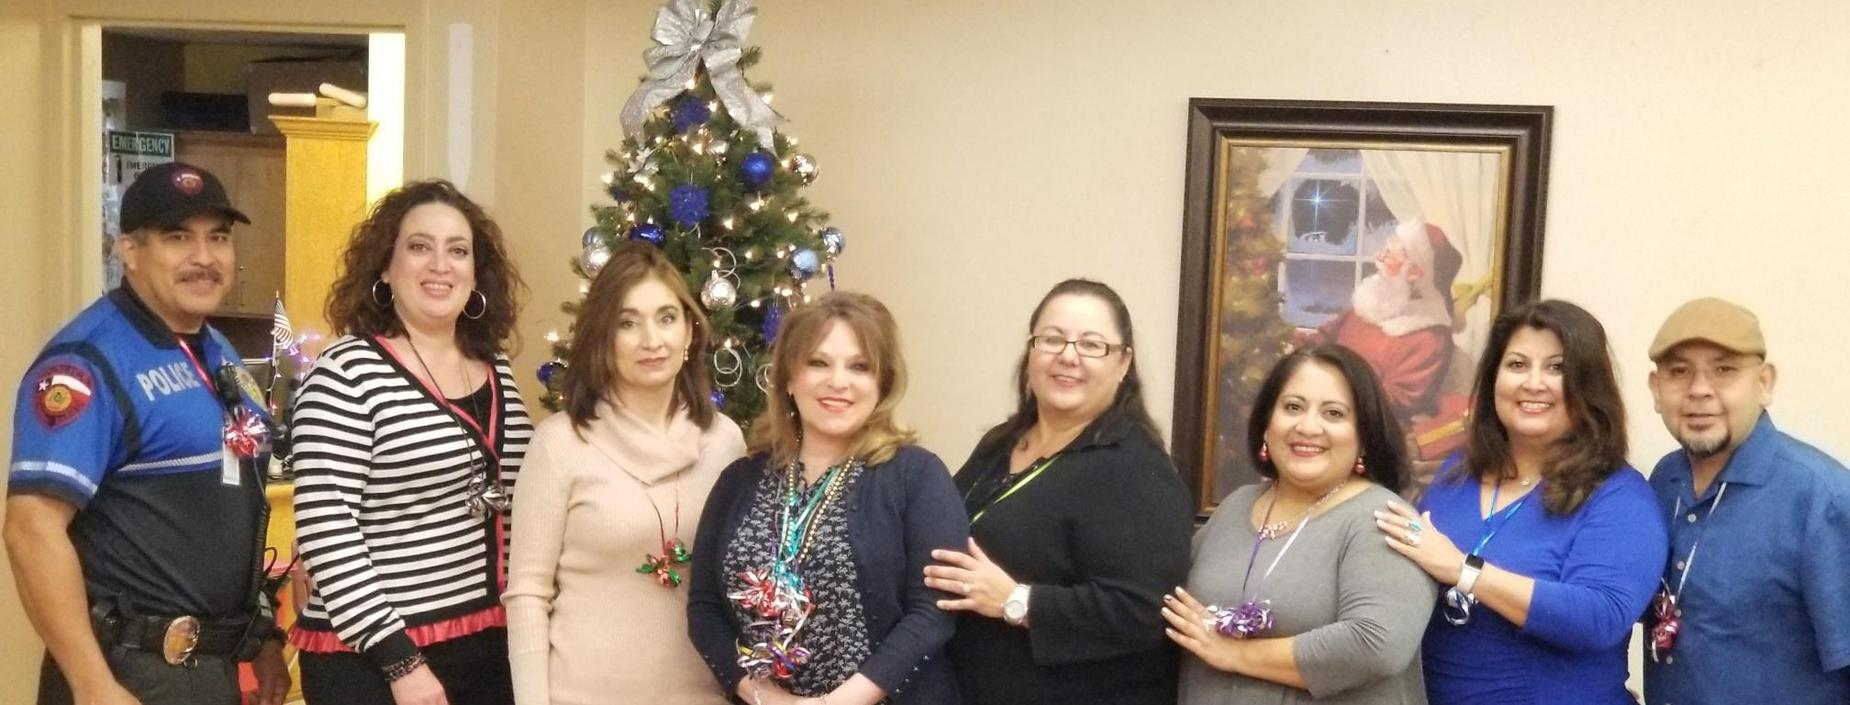 DLV Front office staff and administration